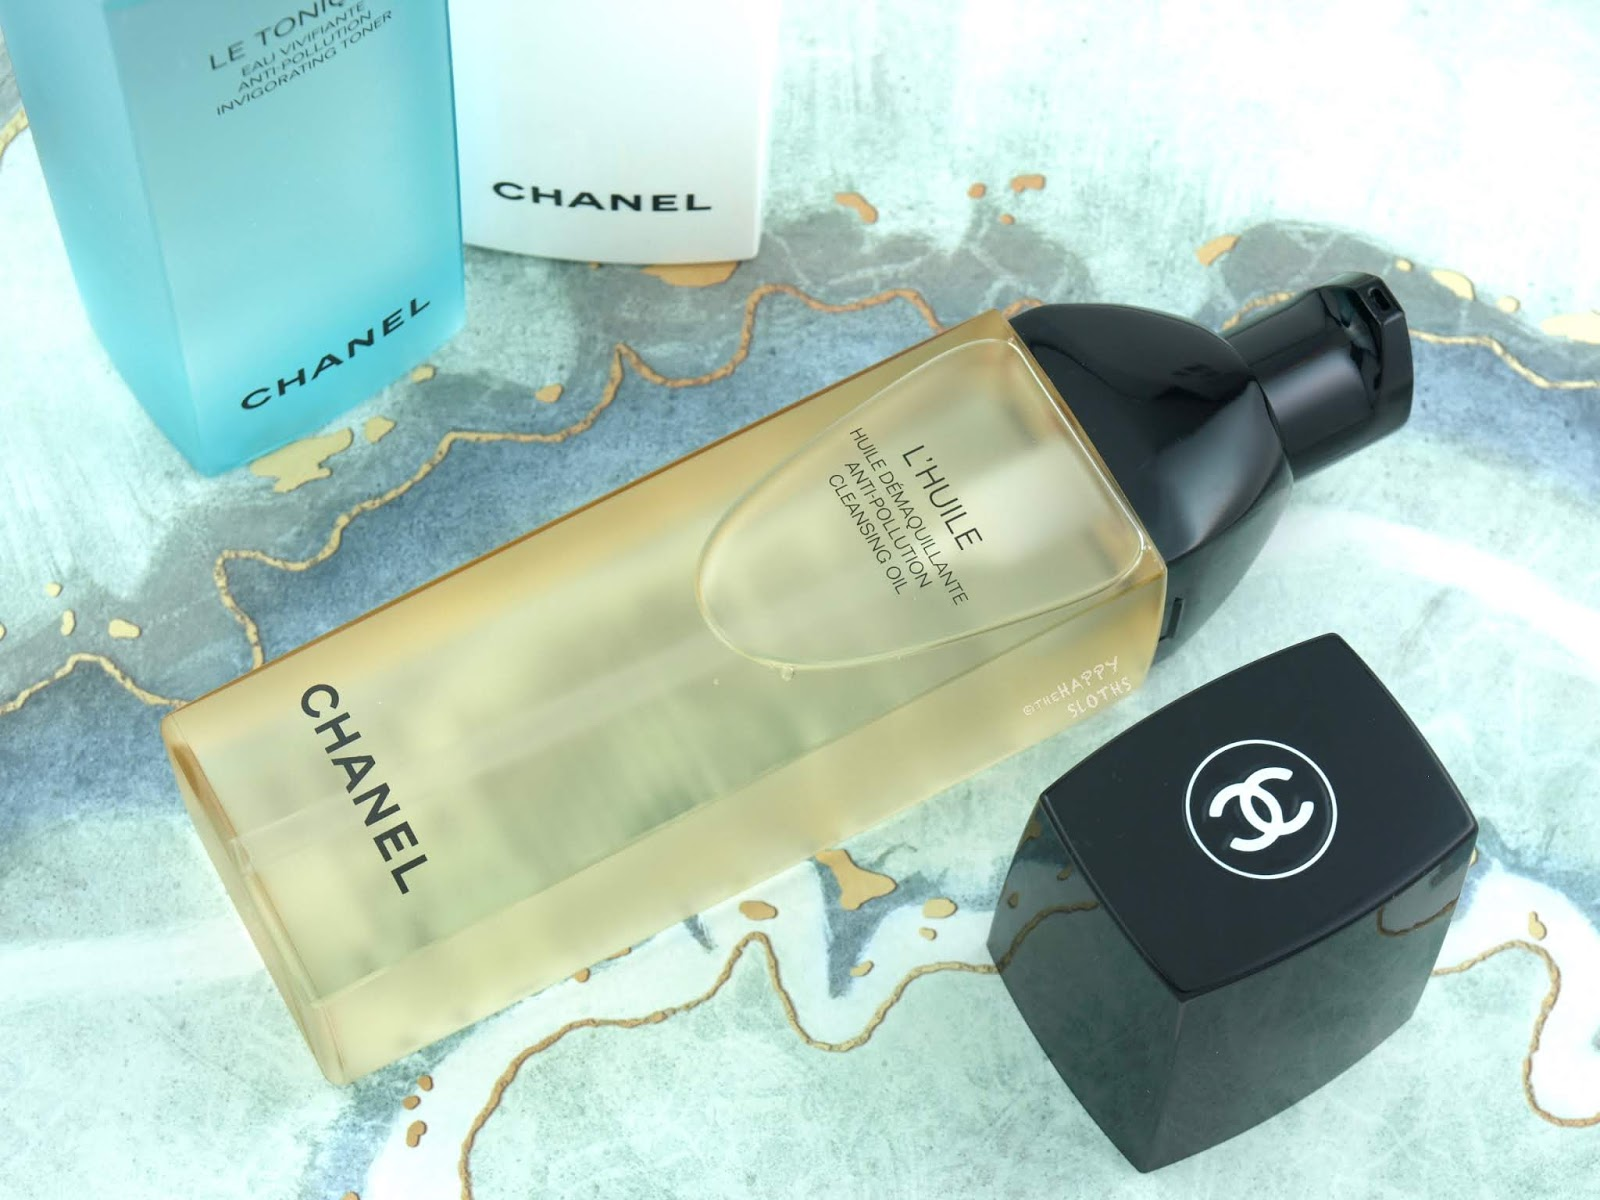 Chanel | L'Huile Anti-Pollution Cleansing Oil: Review